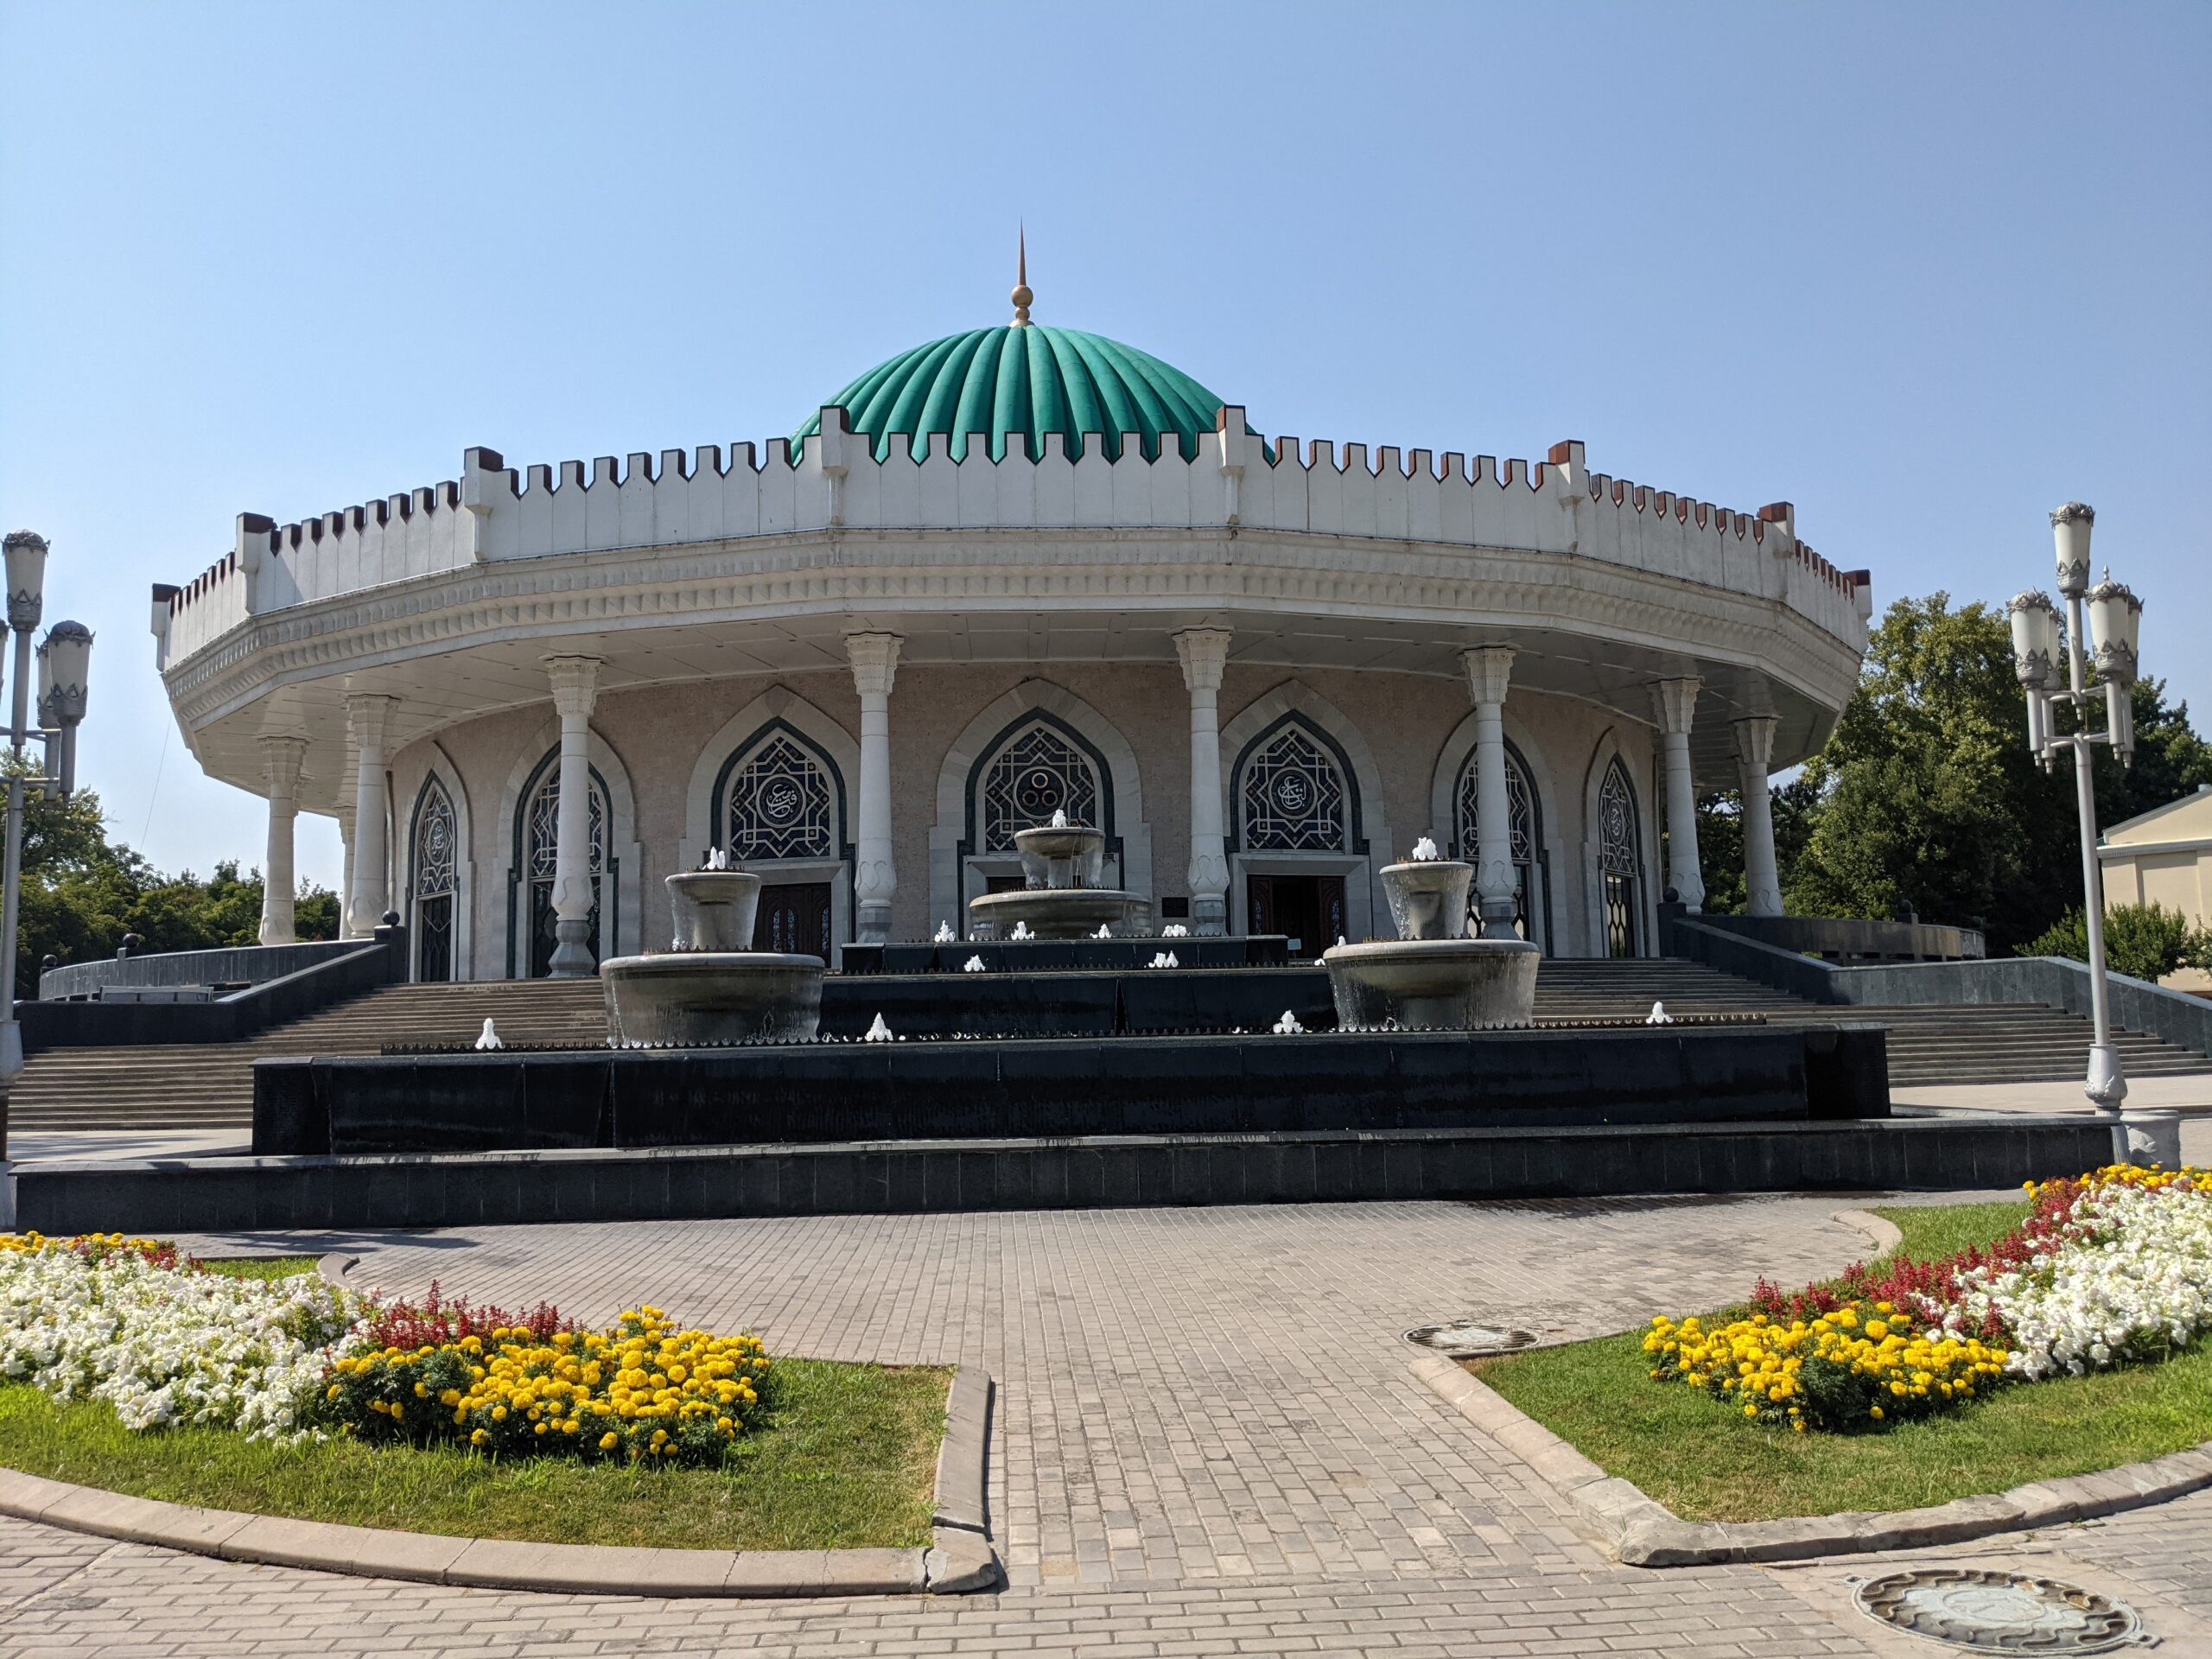 Our Day in Tashkent